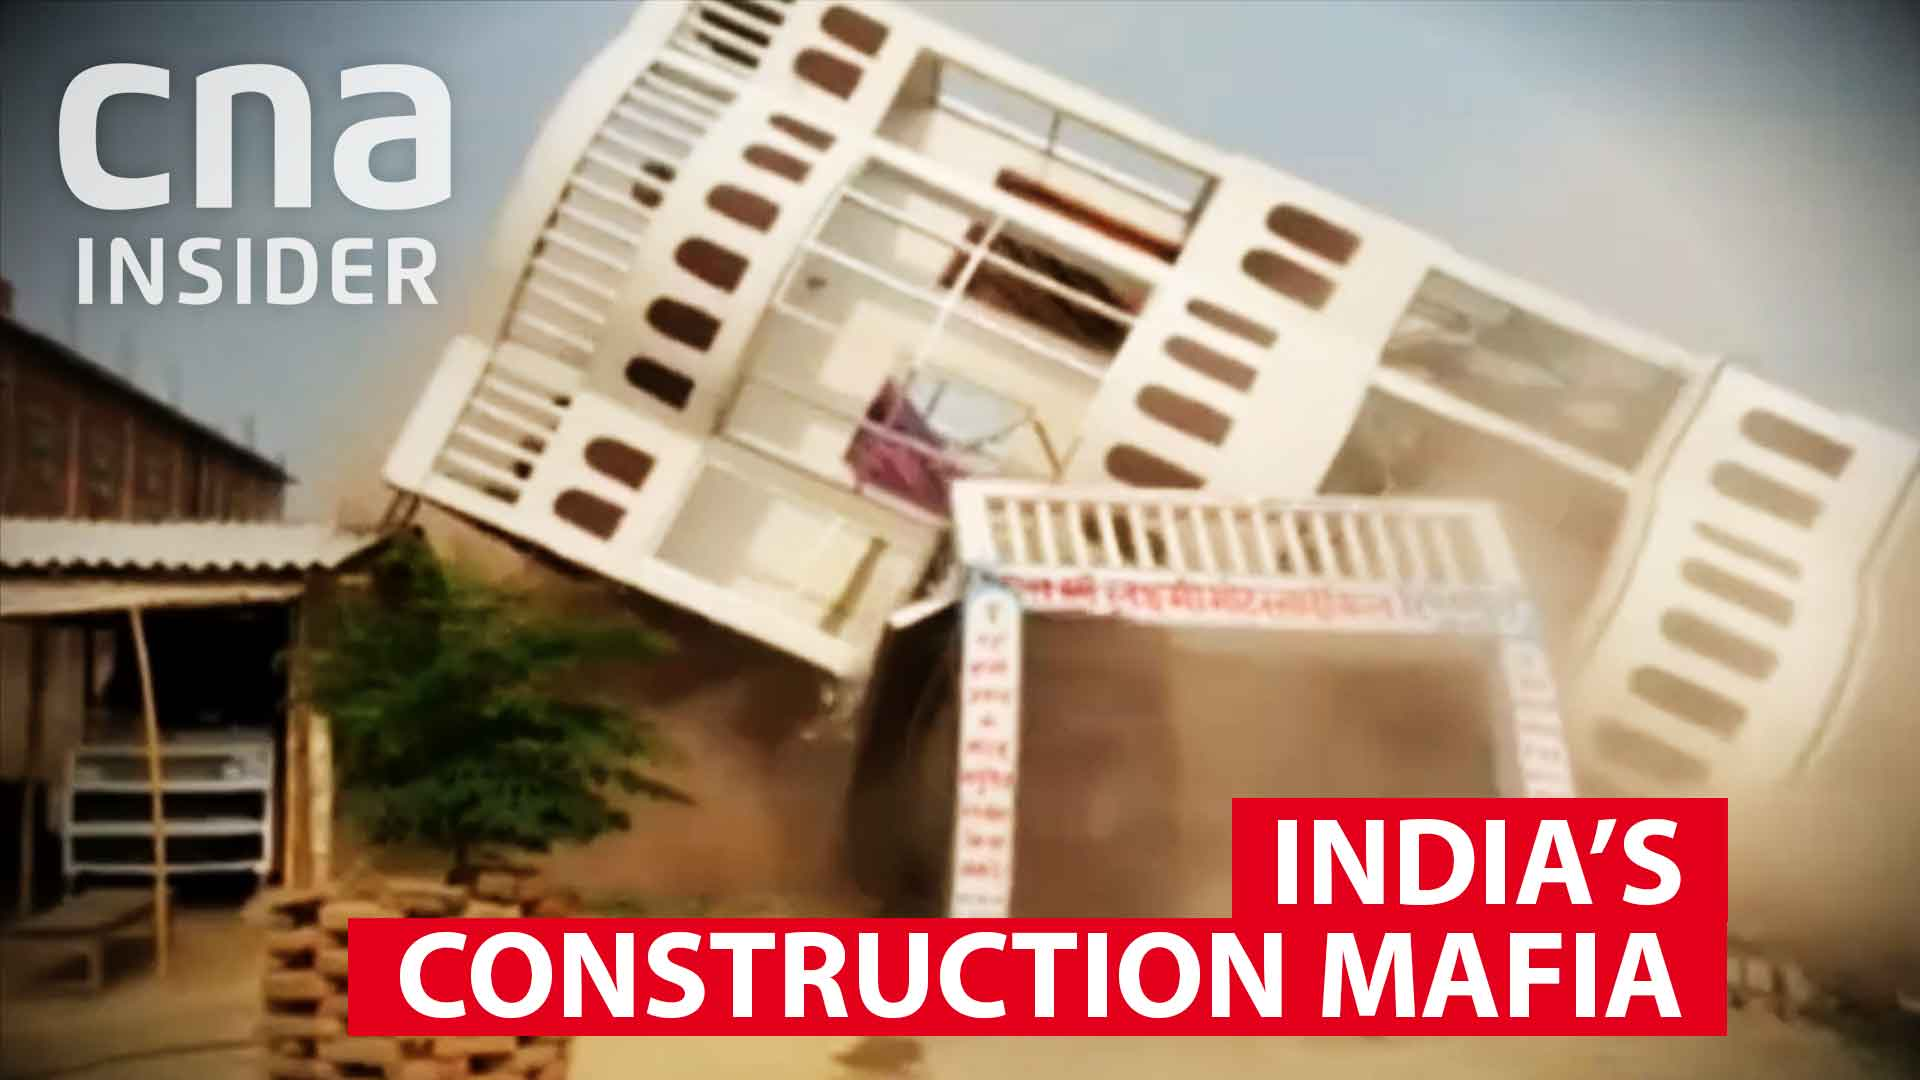 India's unsafe buildings and the construction mafia